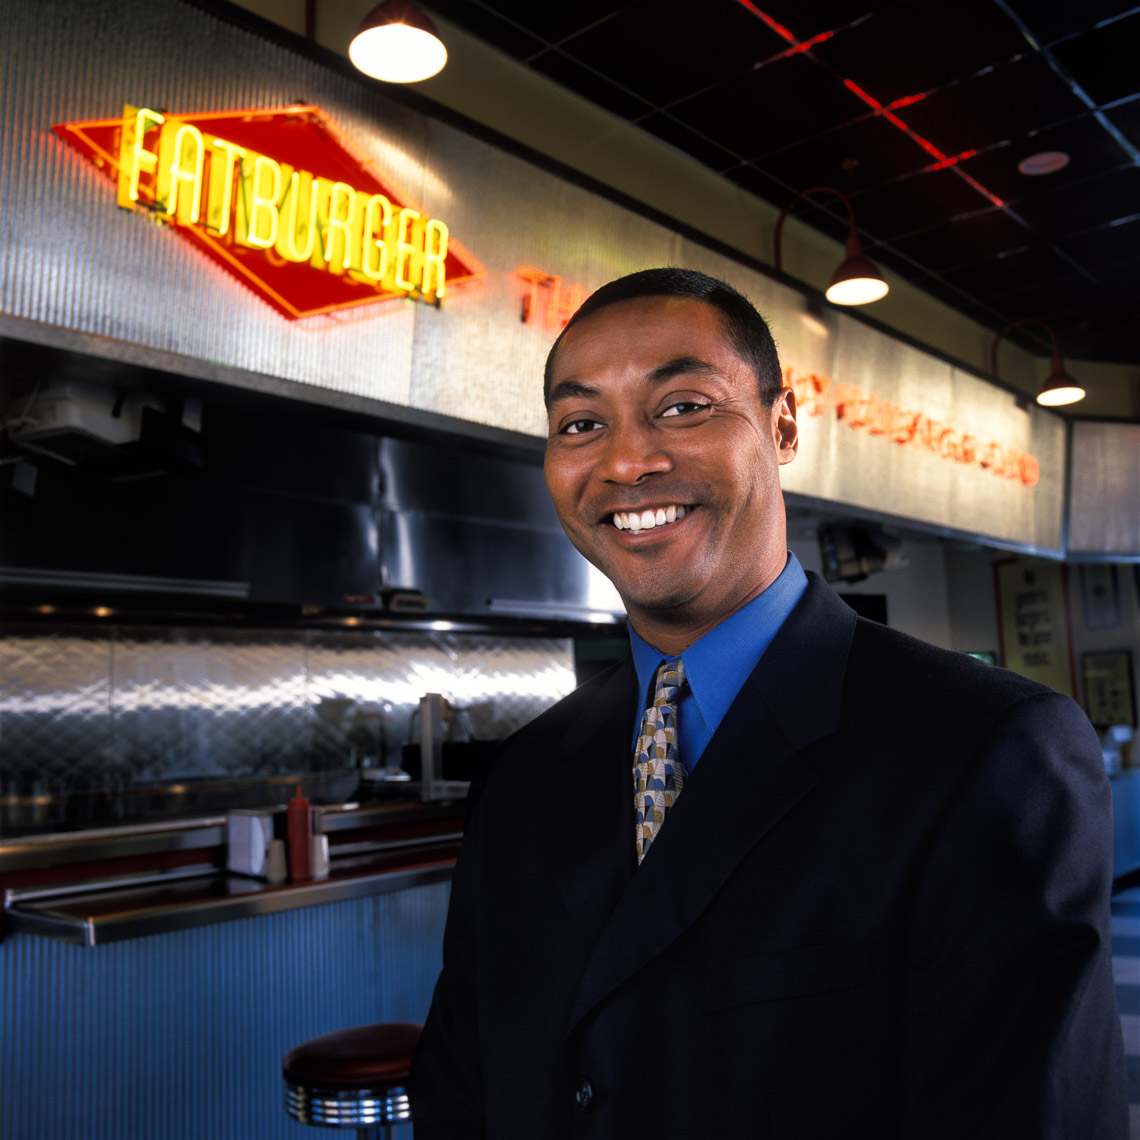 Perry Johnson - FatBurger Franchise Owner